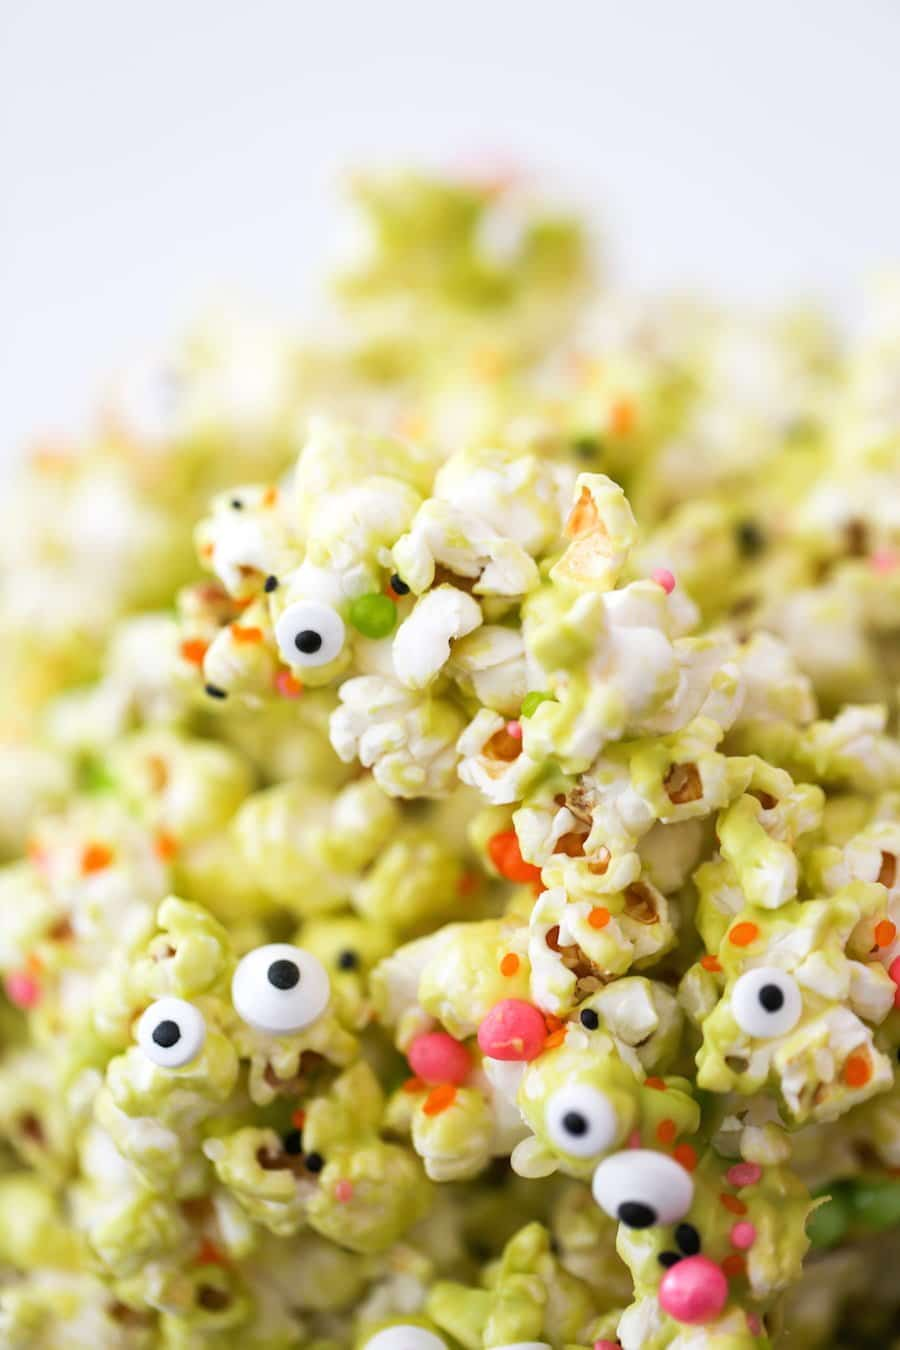 Halloween Monster Popcorn, Monster Munch Popcorn, Halloween party popcorn, candied popcorn, green popcorn, eyeballs, gooey popcorn, Salty Canary